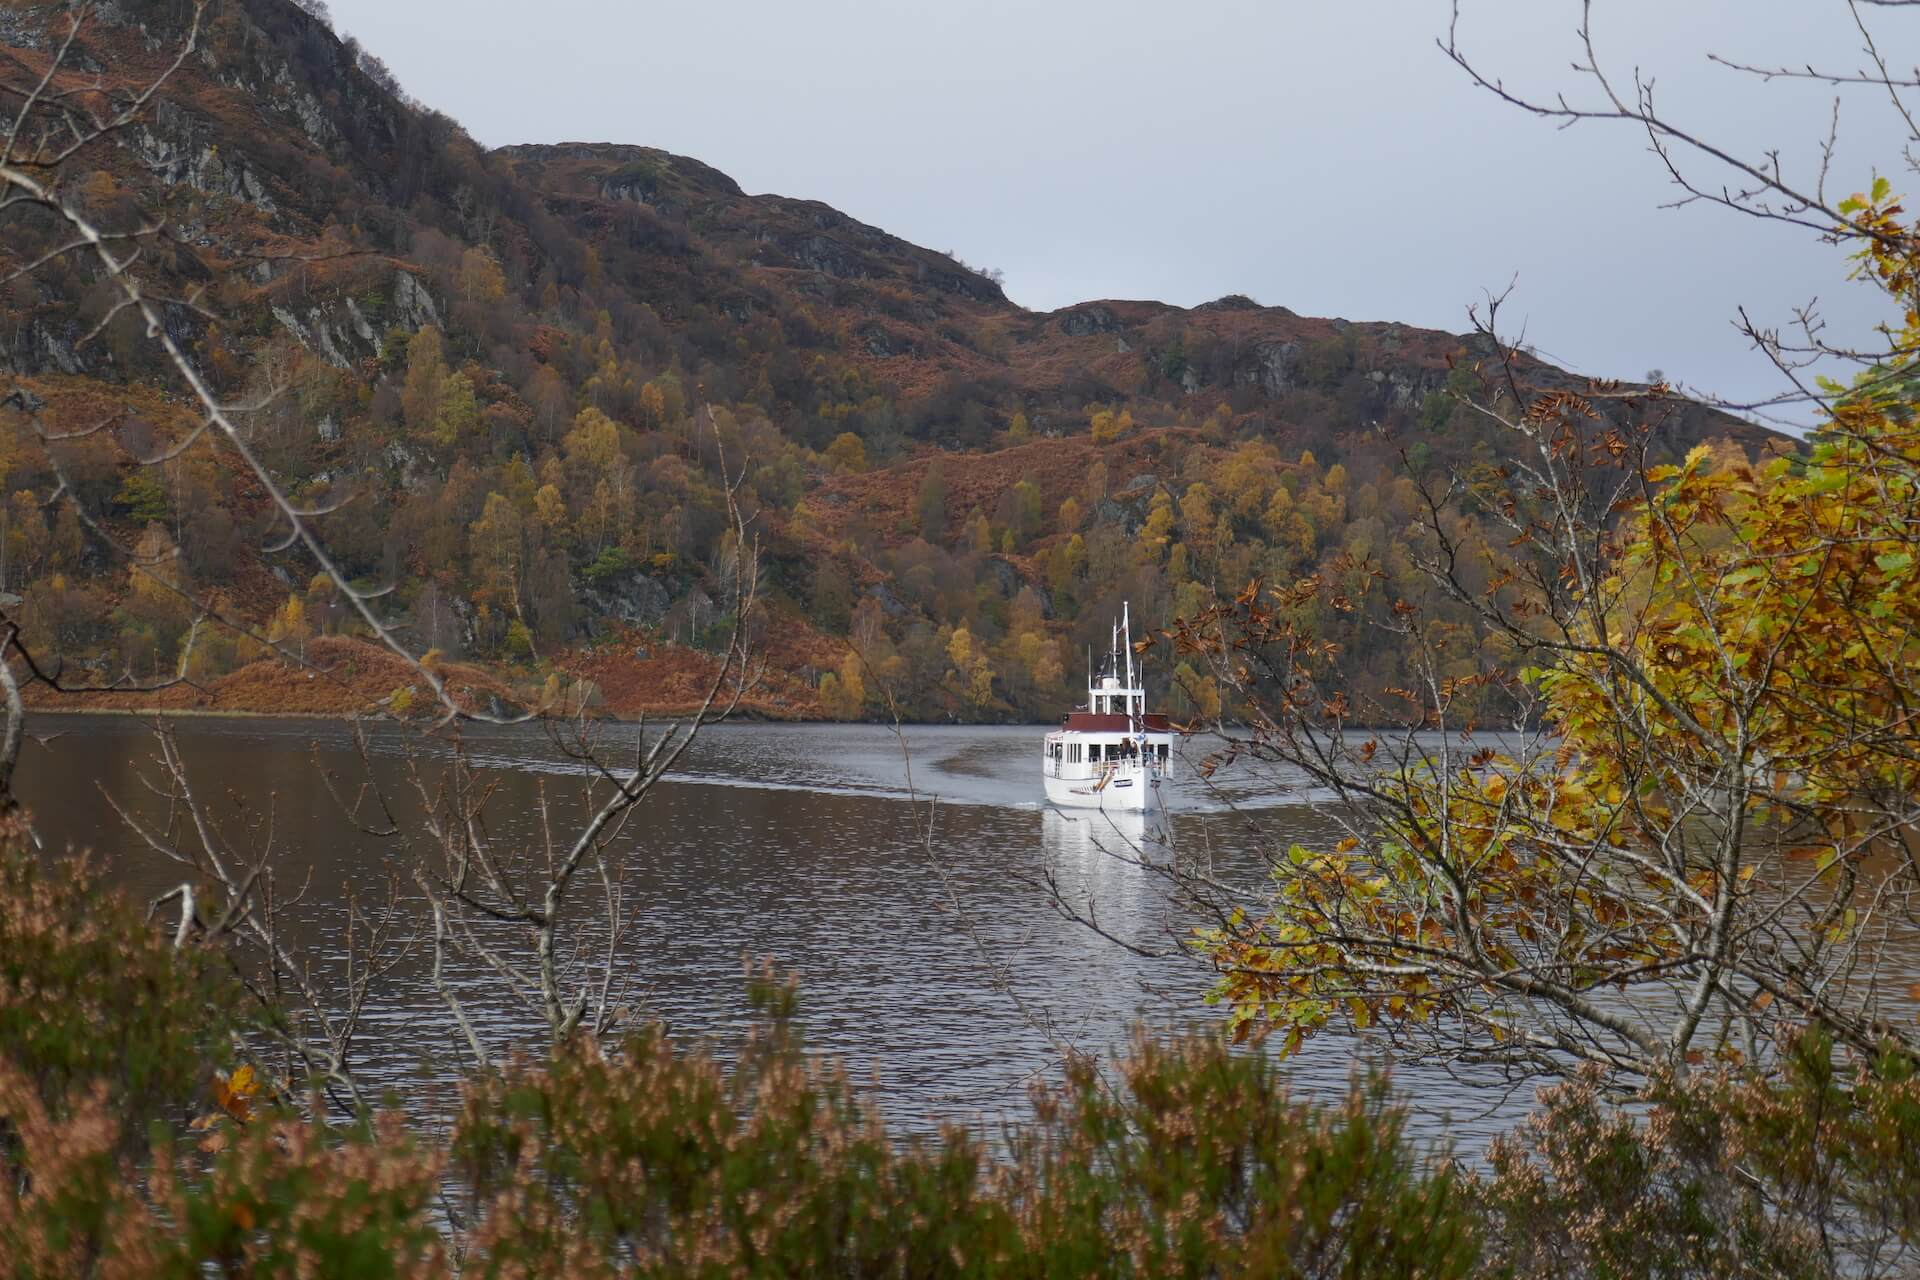 The Sir Walter Scott comes to dock on Loch Katrine